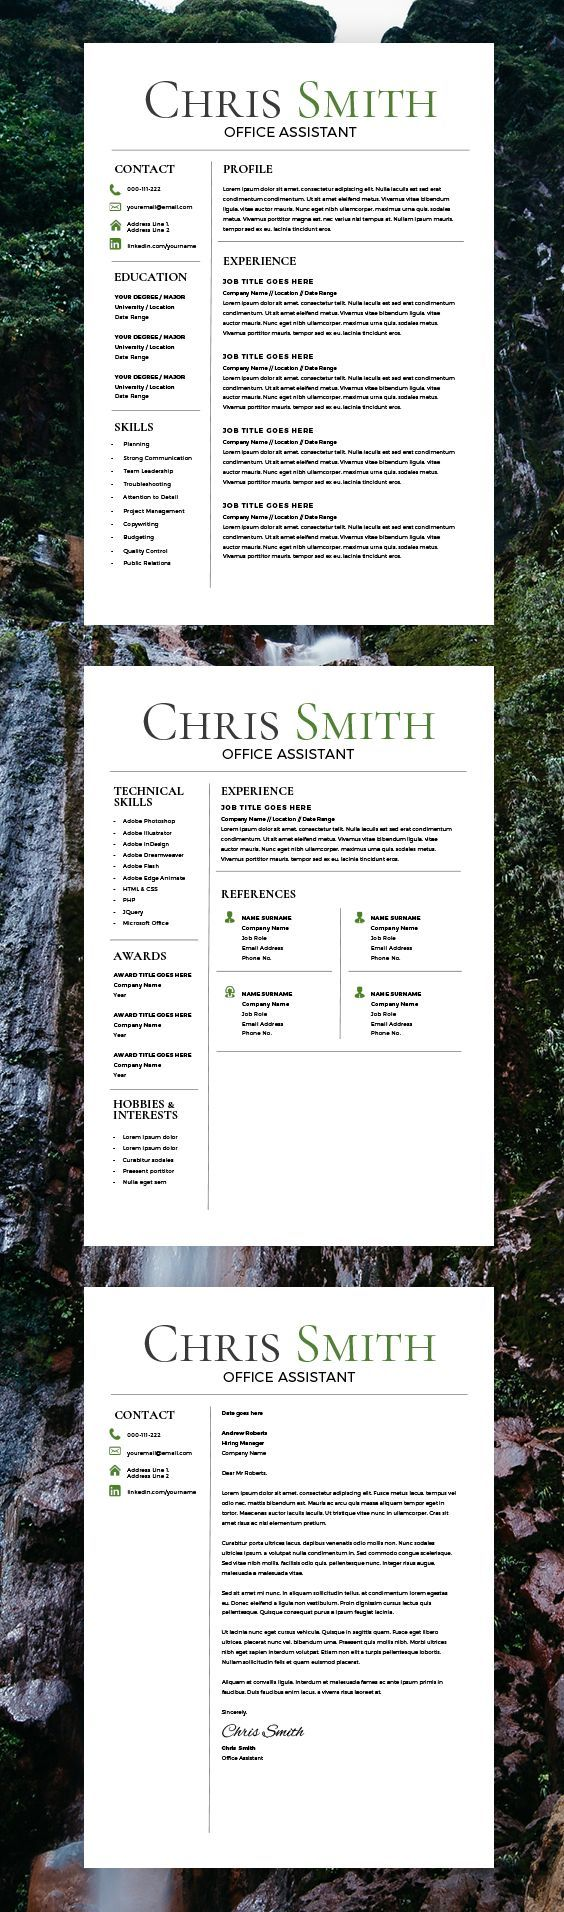 Trending Resume Template - Cv Template - Free Cover Letter - Ms Word Mac/pc  - Professional Resume - Best Resume Templates - Instant Download